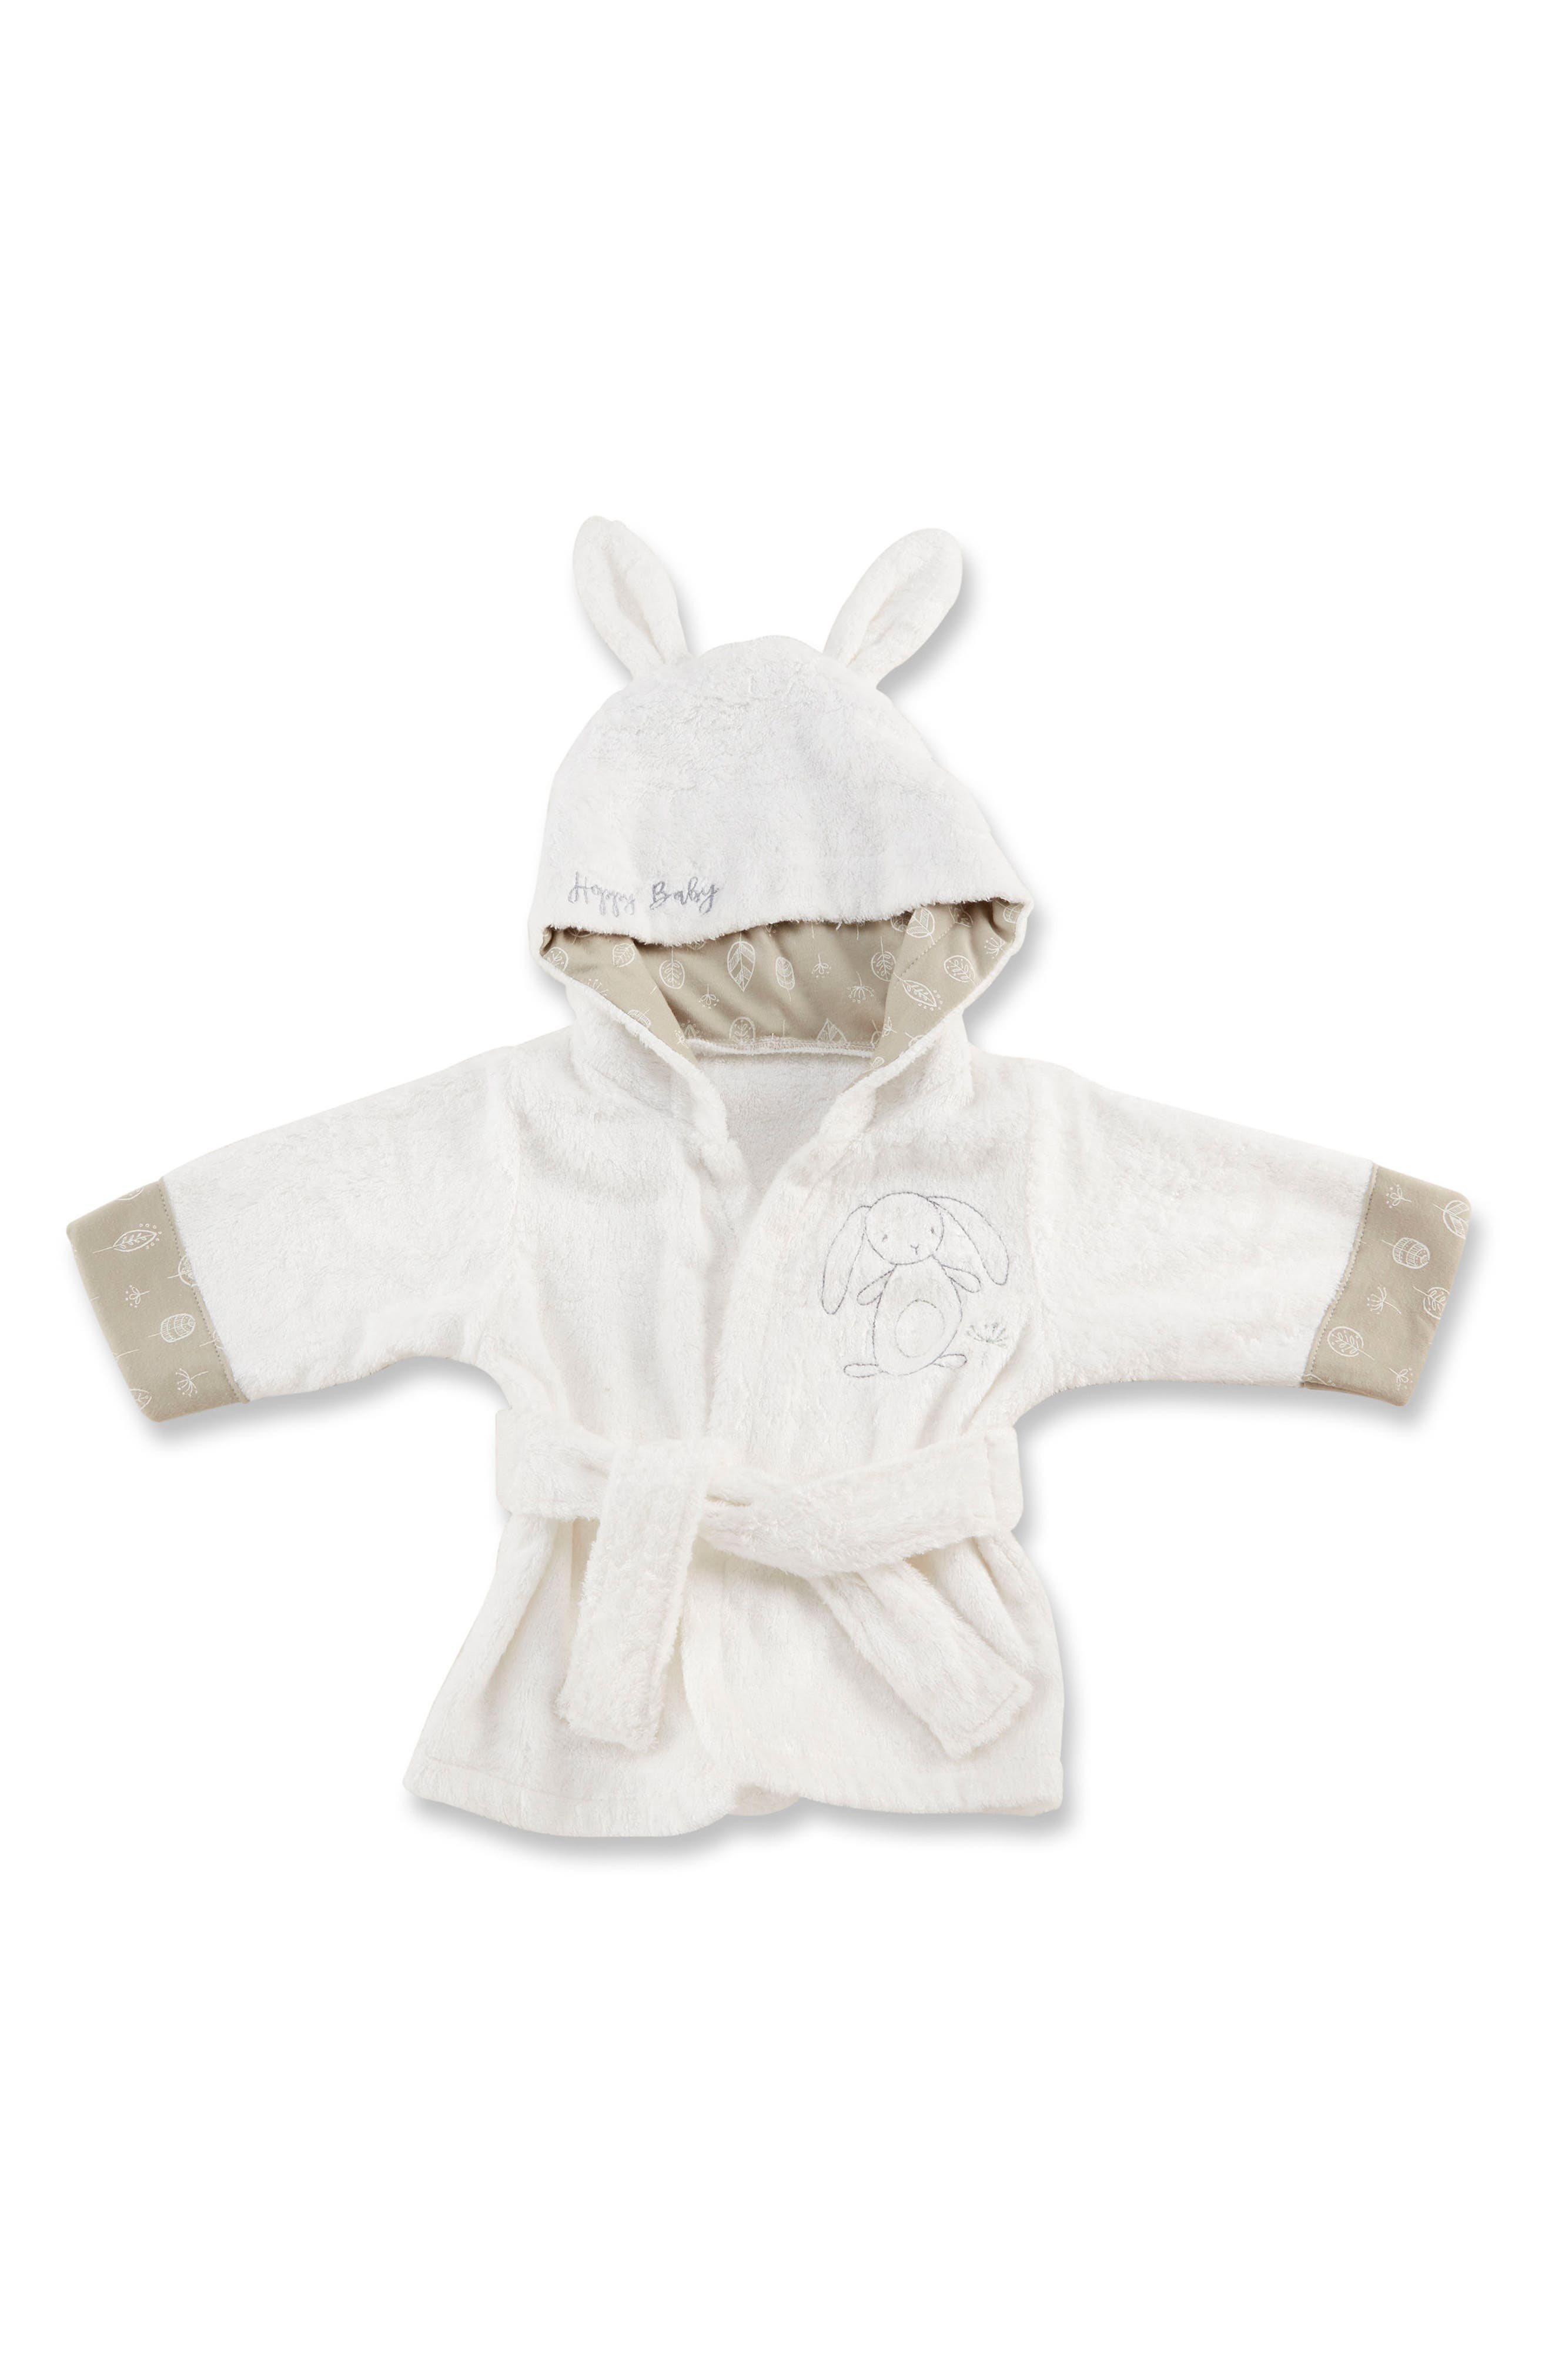 Nature Baby Bunny Bathrobe,                             Main thumbnail 1, color,                             White, Beige And Grey